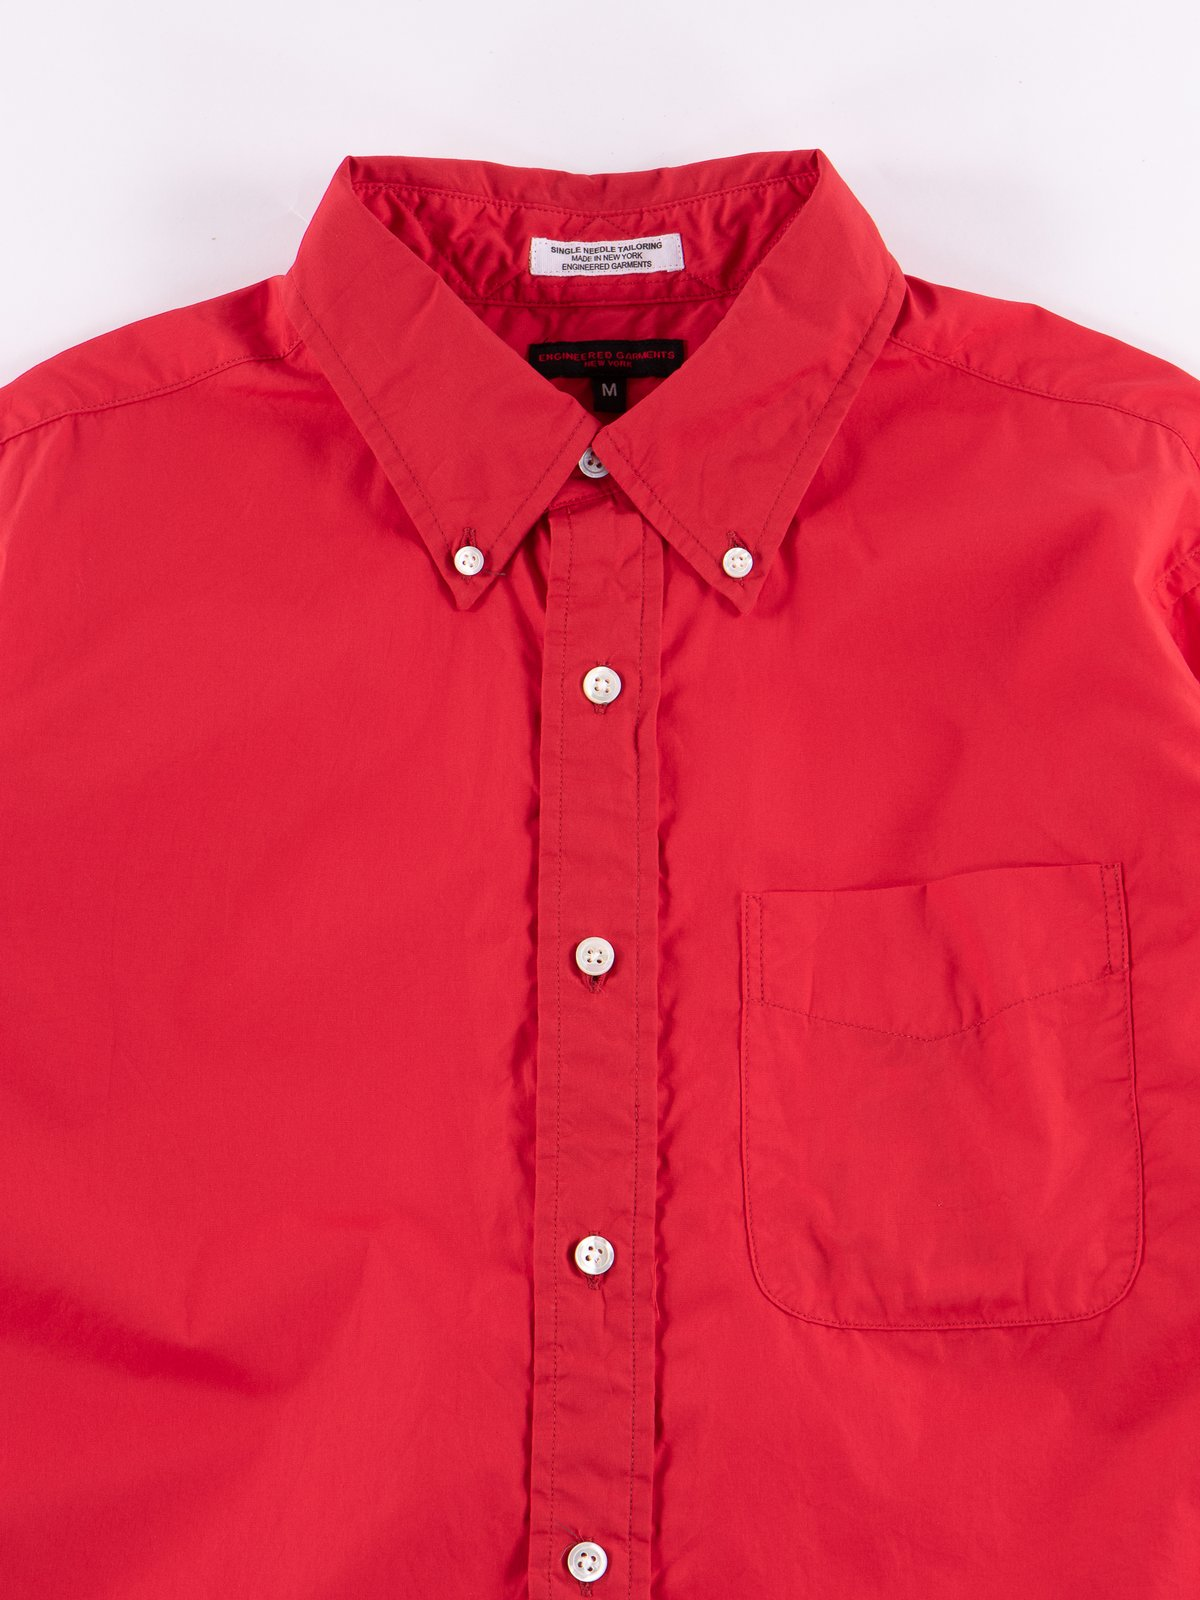 Red 100's 2ply Broadcloth 19th Century BD Shirt - Image 3